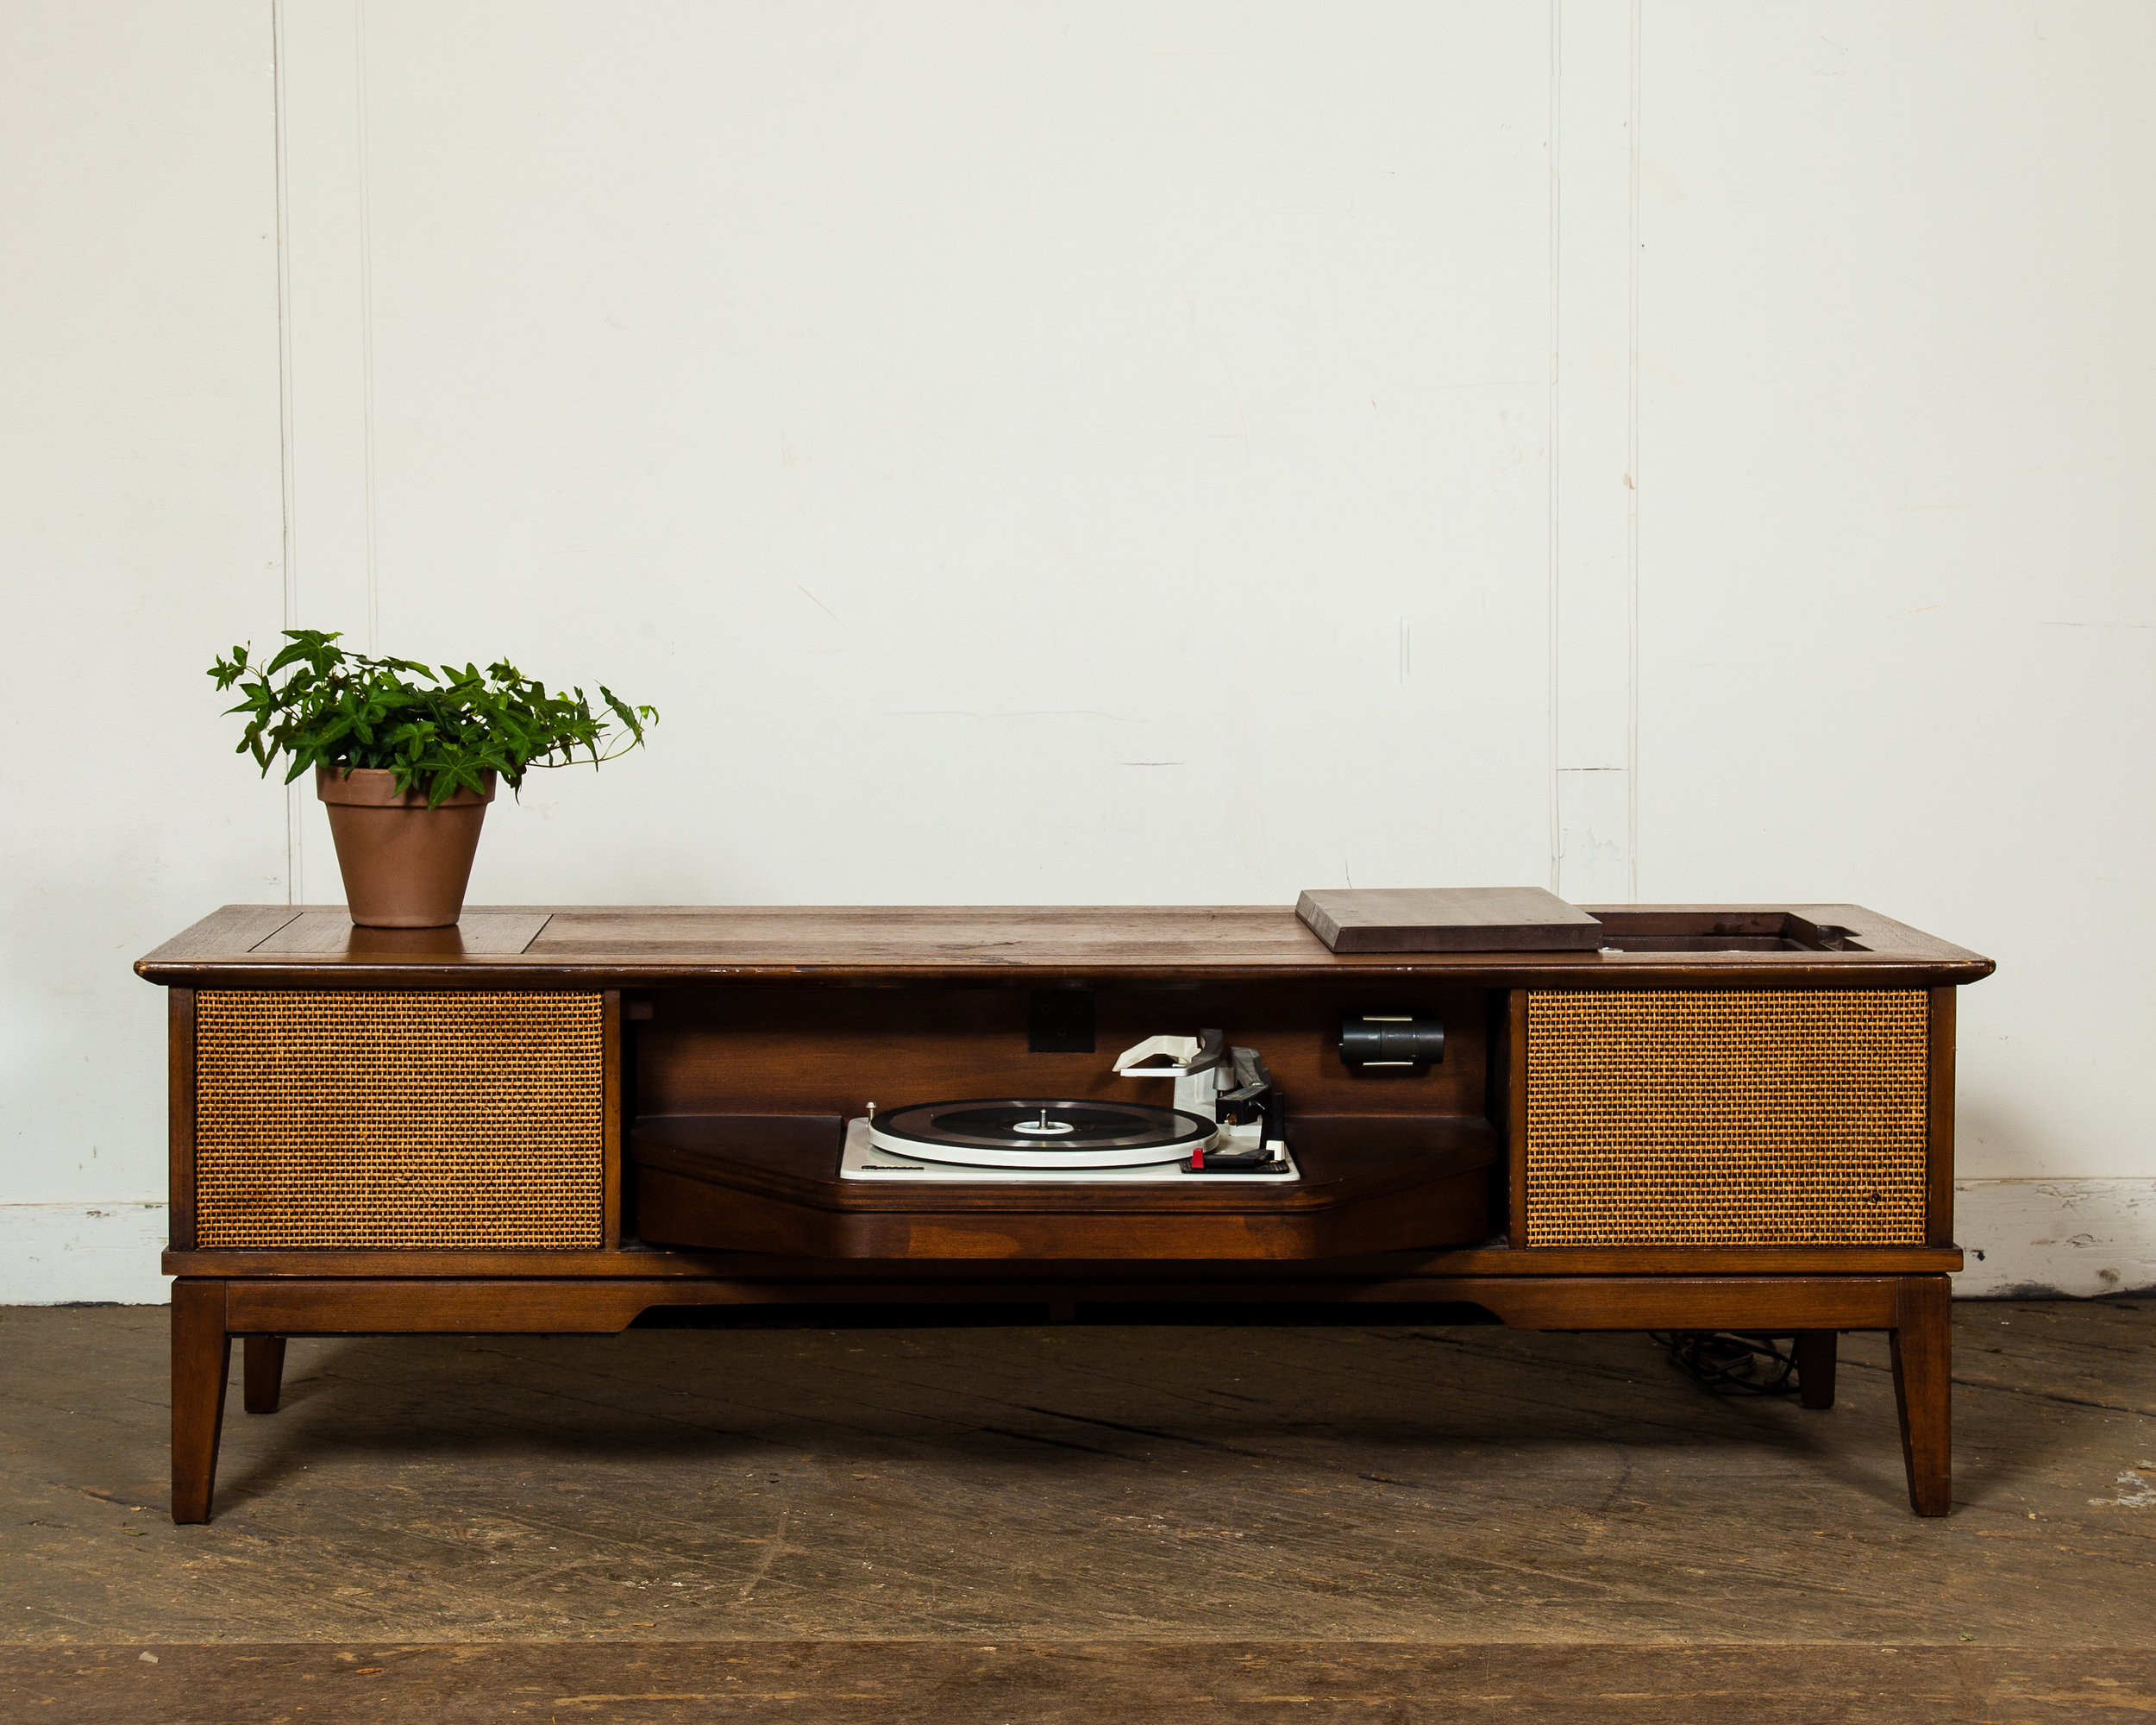 Magnavox Stereo Coffee Table  – There's nothing like being able to pull out old vinyl on a working record player. Gather 'round and spin those favorite vintage holiday 45s and 33s.